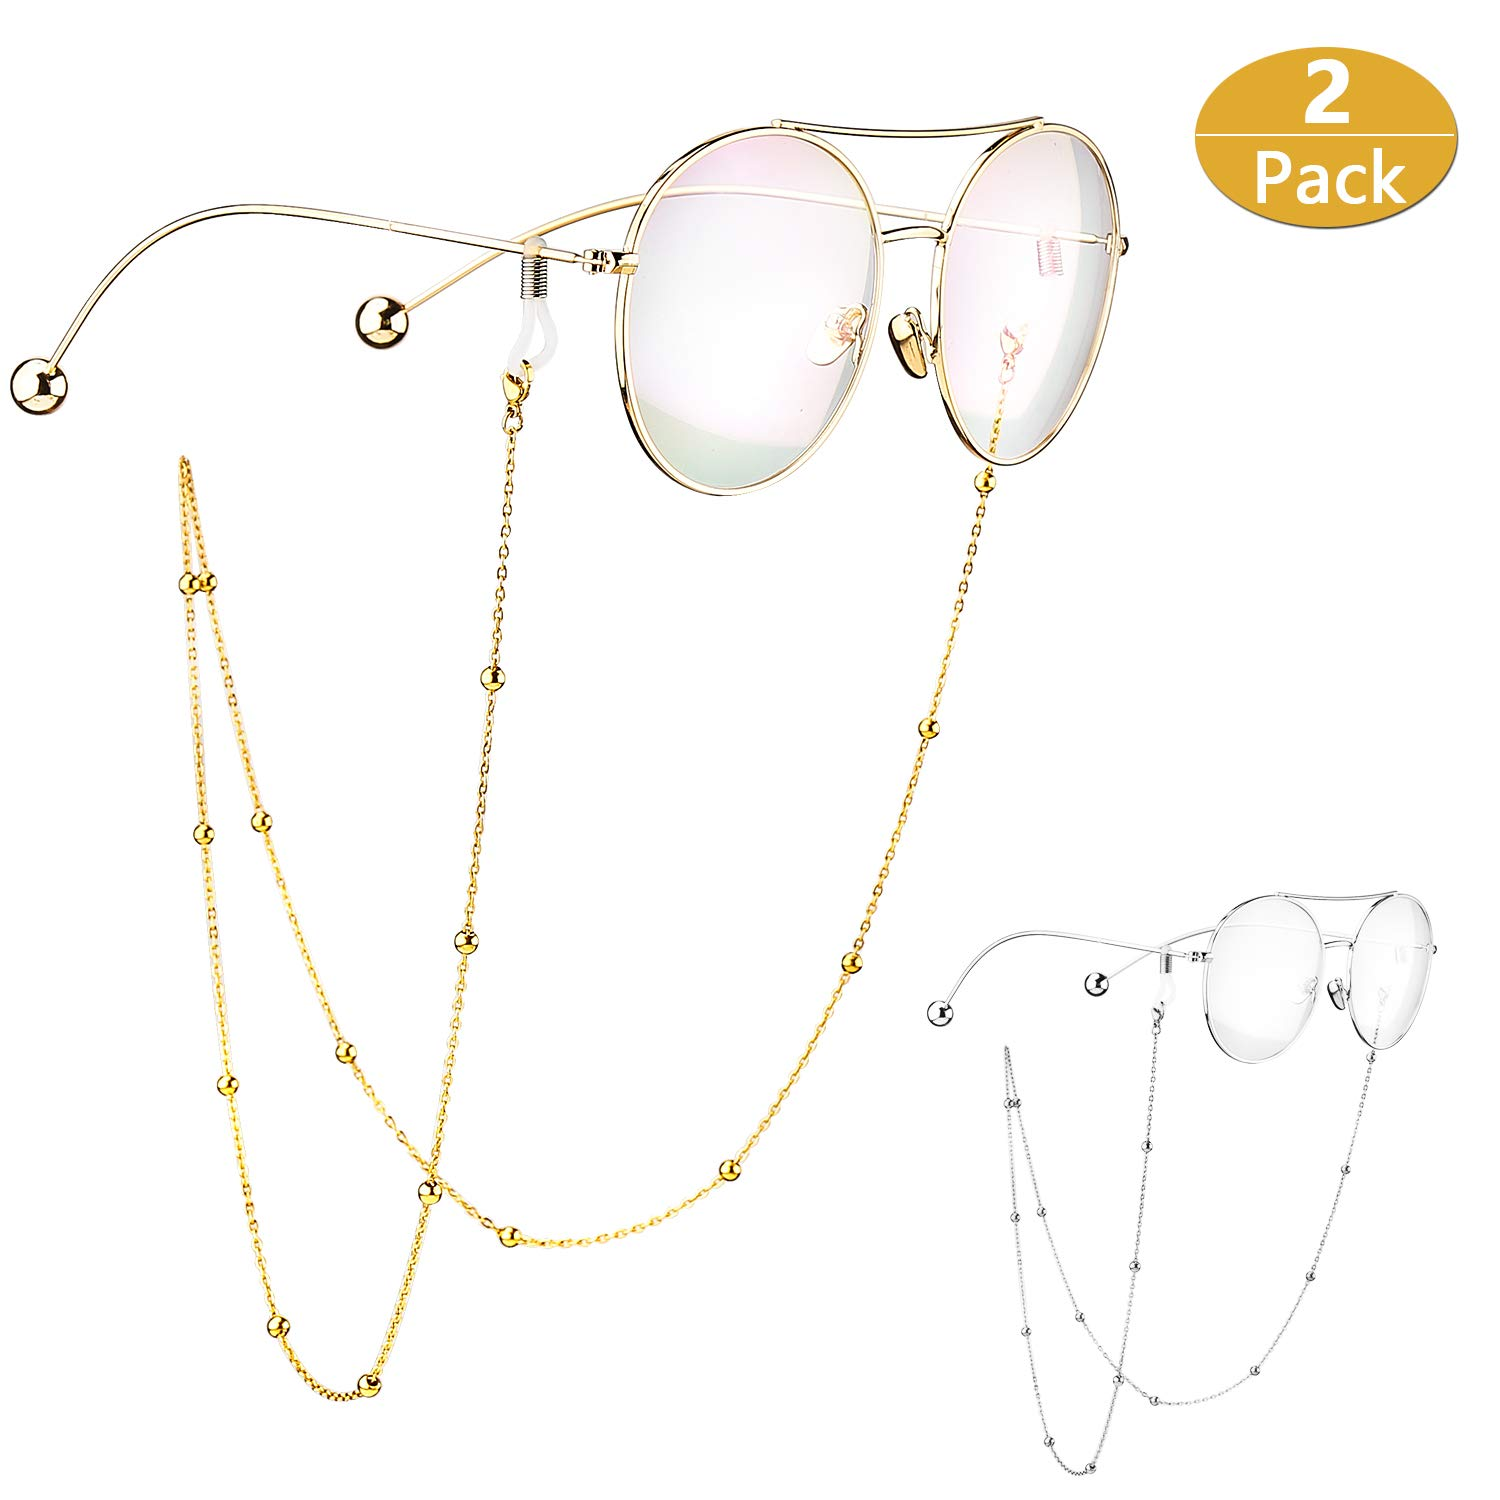 2 Pack Beaded Stainless Steel Glasses Chain Sunglass/Eyeglass Chain Cord Glasses Strap Cord Holder Neck Strap for Women(Gold and Silver) S'Wonderland